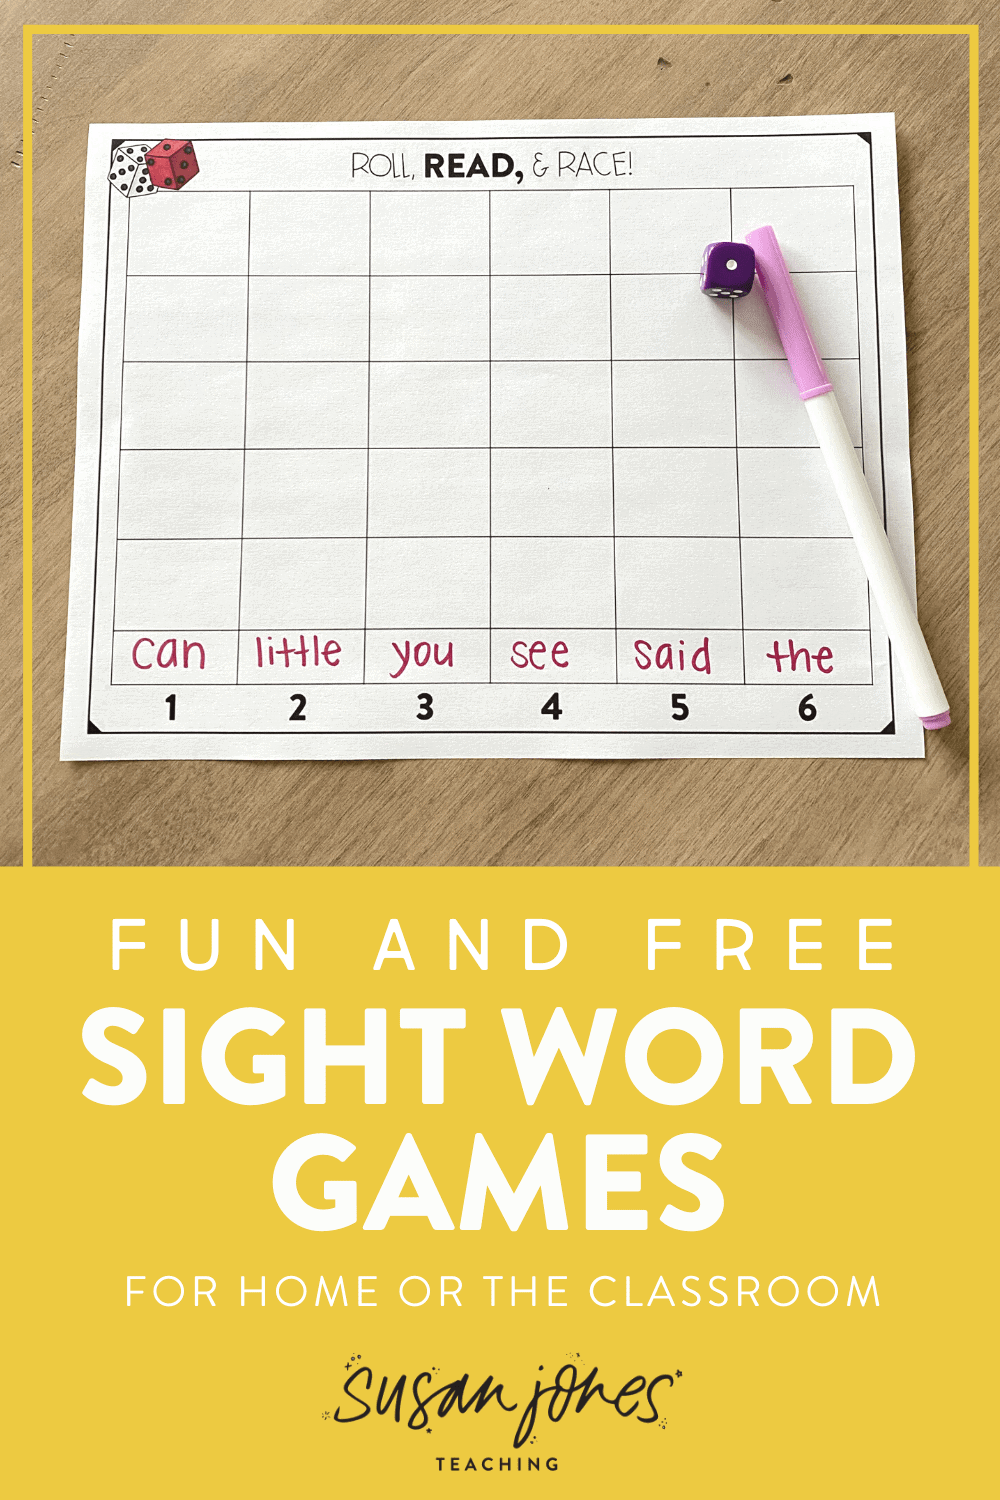 Looking for a new sight word activity instead of just flash cards?! I love all three of these sight word activities to play at home or in the classroom. They're easy to learn and fun for kindergarten, first grade, and second grade students! Head over to the post to grab the sight word worksheets and see how to play each game!